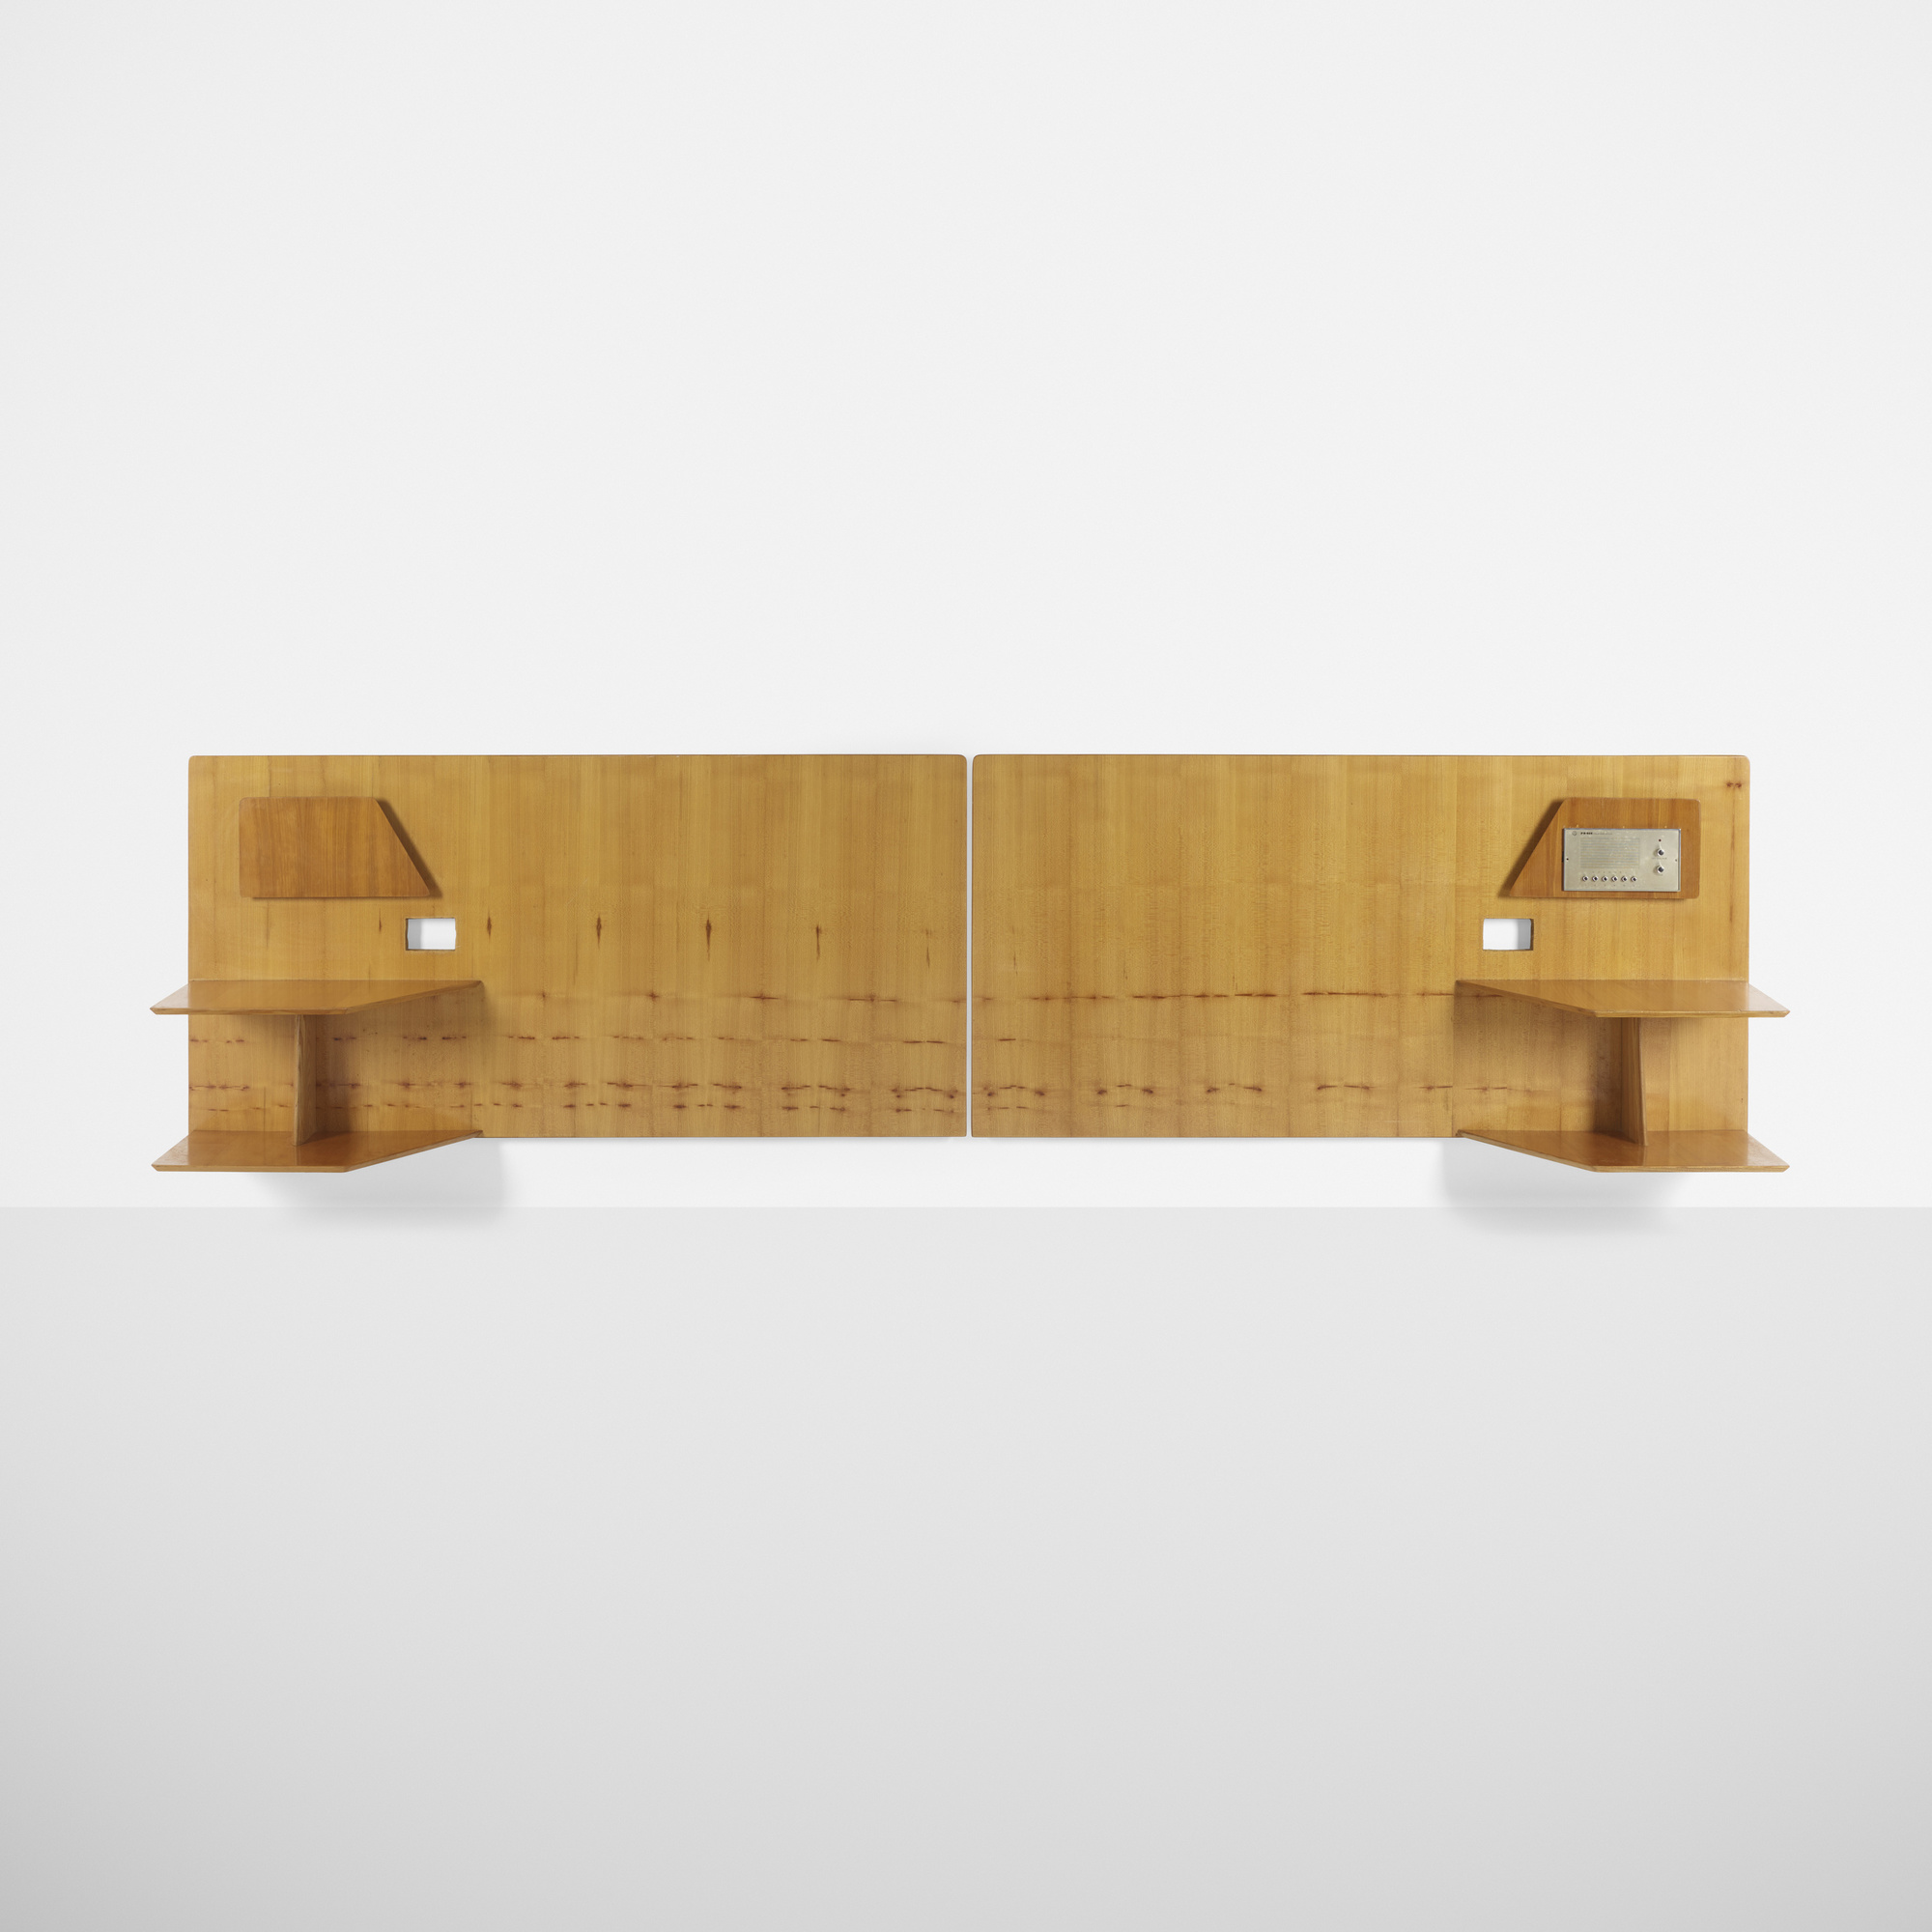 607_1_mass_modern_day_2_august_2018_gio_ponti_pair_of_headboards_from_royal_hotel_naples__wright_auction.jpg